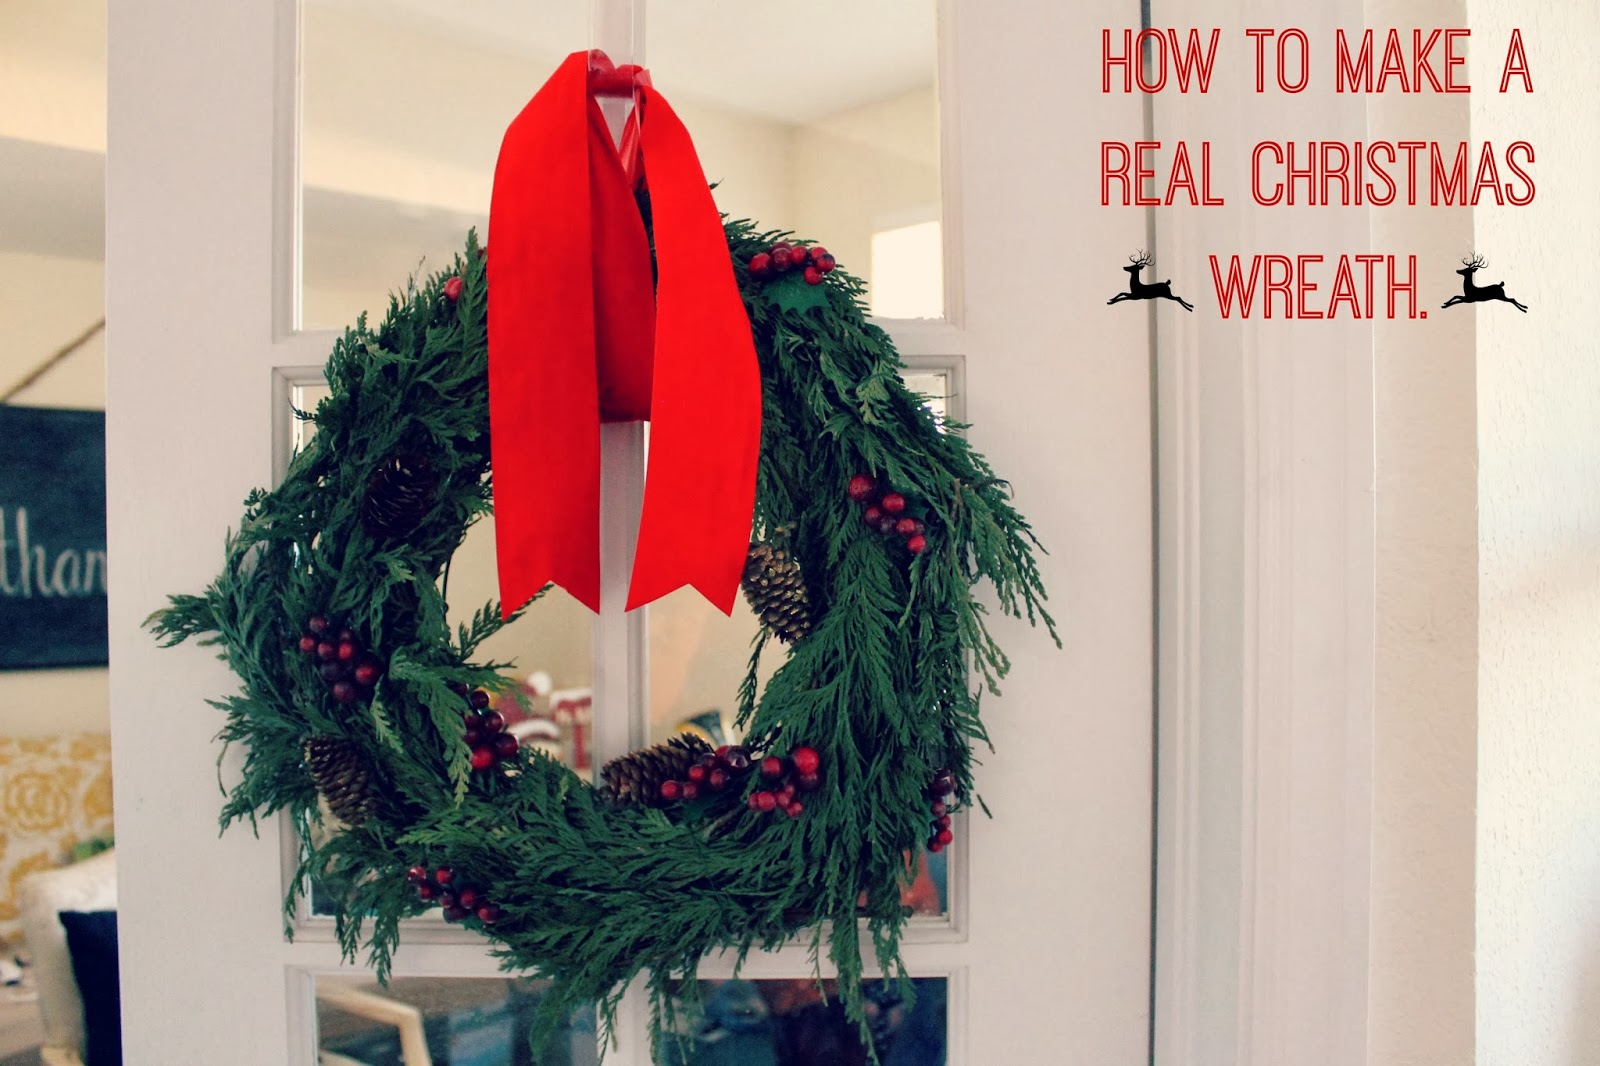 How to make real christmas wreaths - First Off I Was Pumped When The Home Depot Had Real Greenery For Sale On Black Friday For 5 I Bought Two Things Of It One For The Mantel And One For